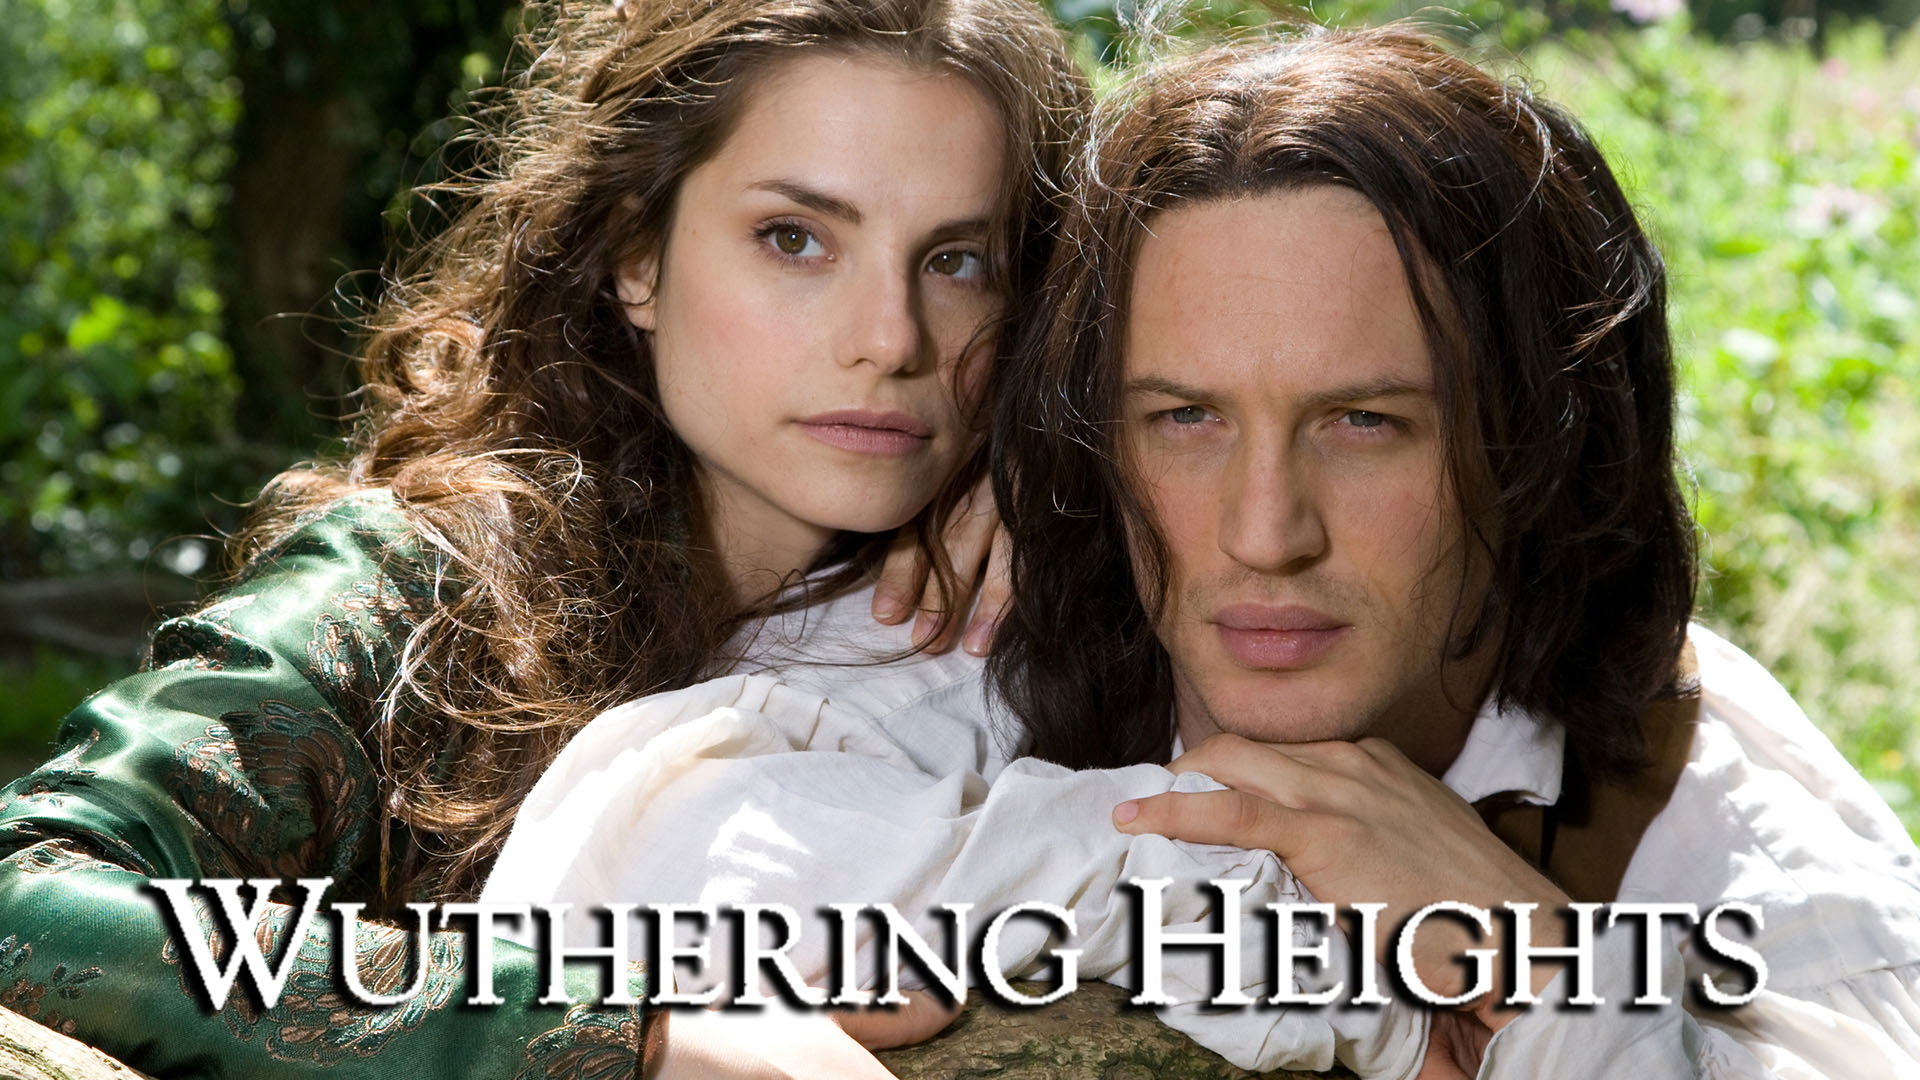 Wuthering Heights - Part 2 of 2